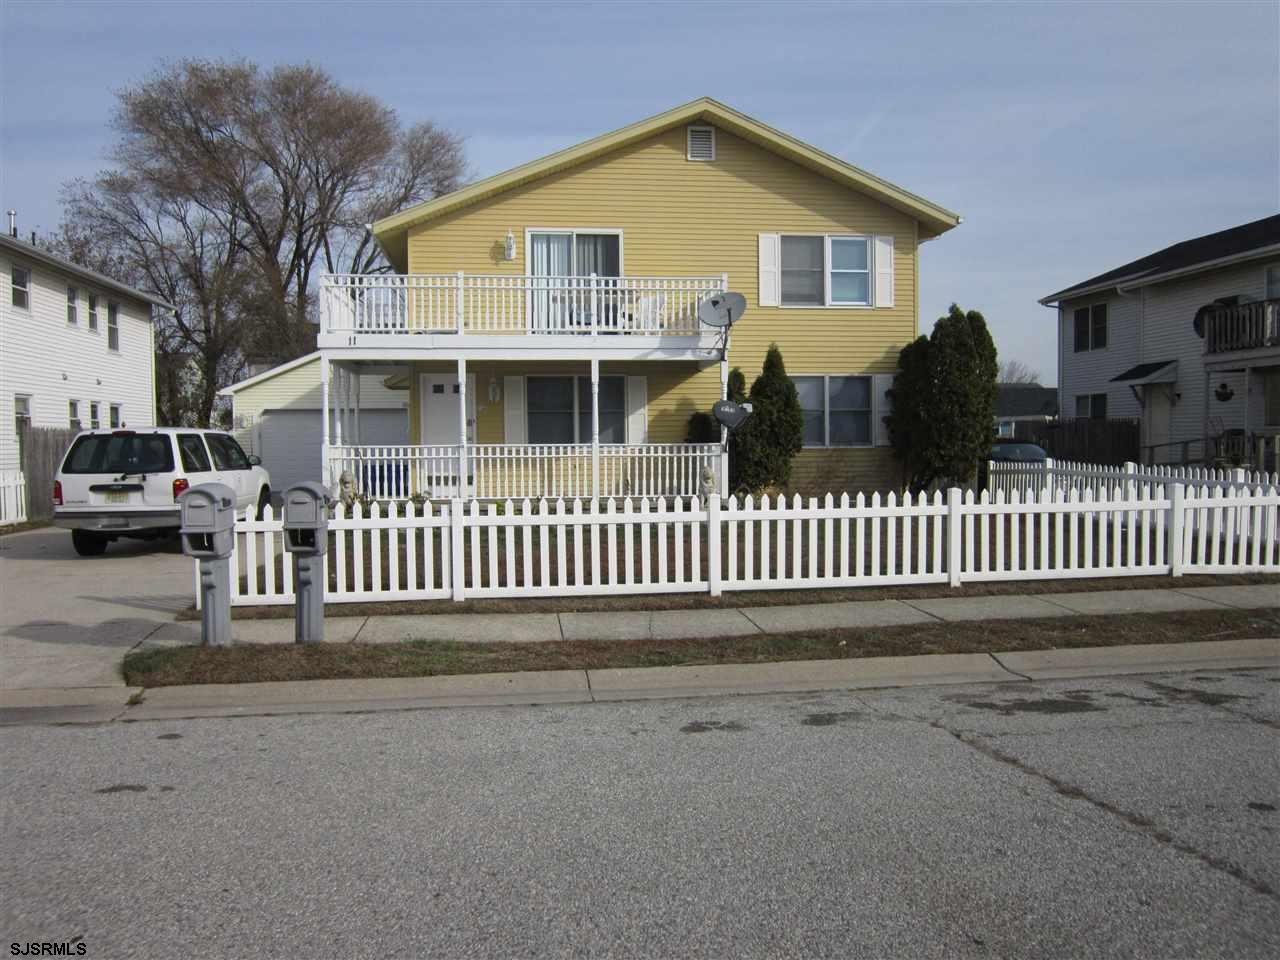 11 Lighthouse Cv Cv Brigantine, NJ 08203 513521